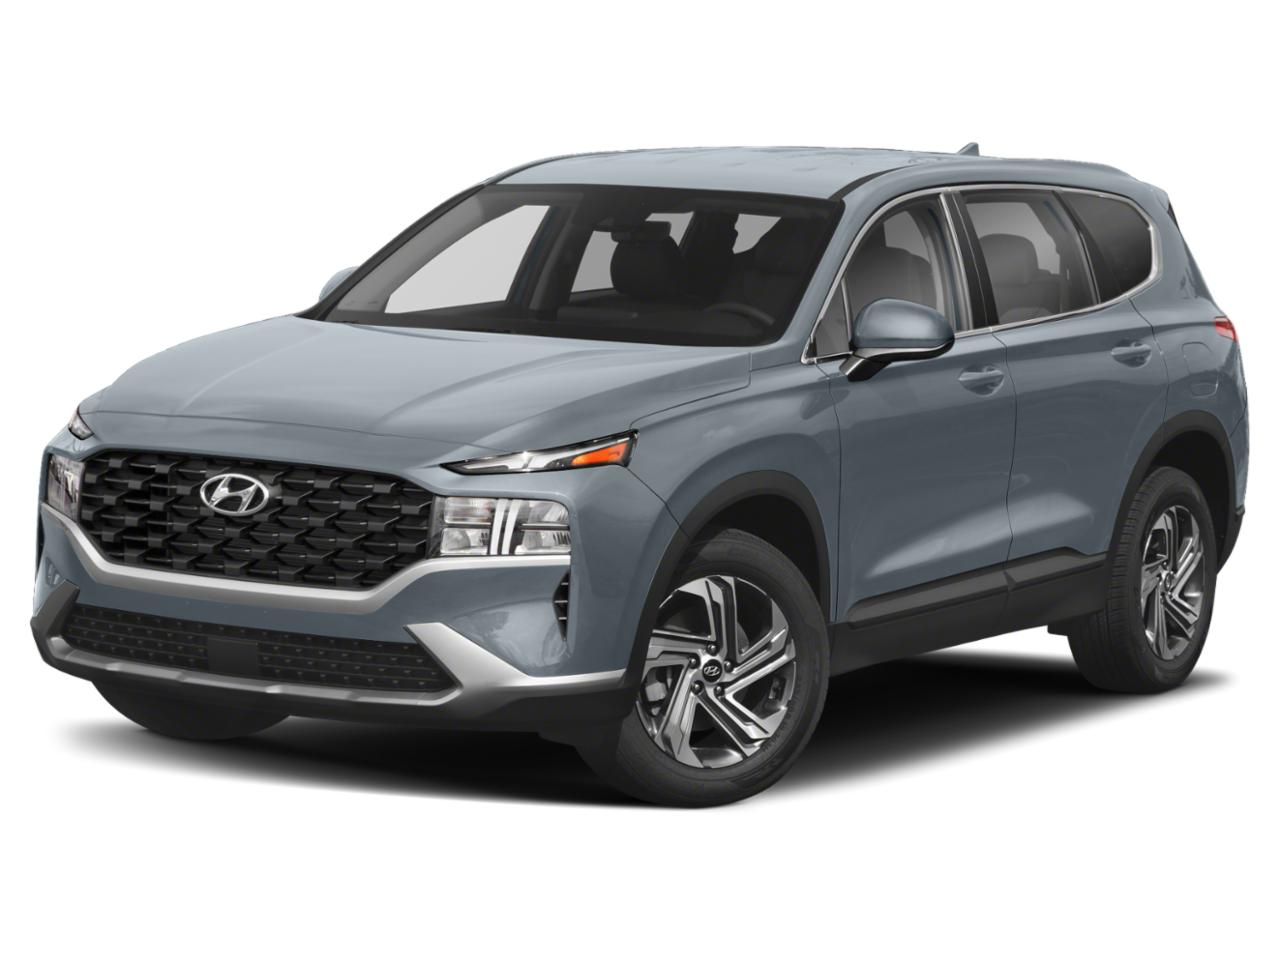 2021 Hyundai Santa Fe Vehicle Photo in Nashua, NH 03060